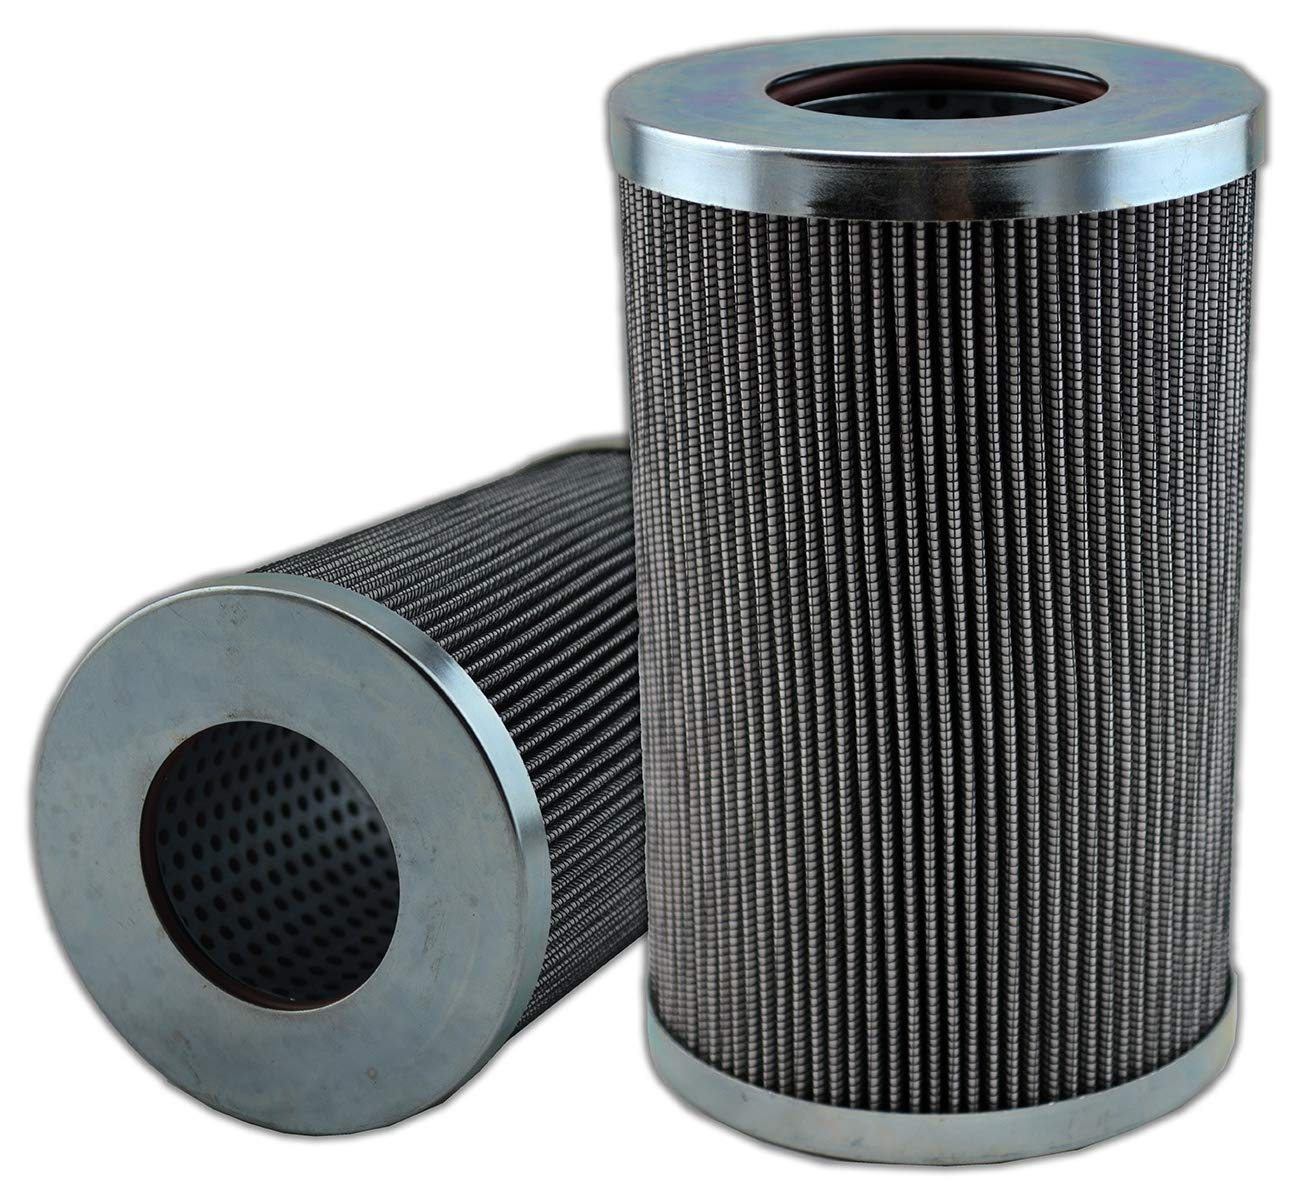 FILTREC XR160G25V Heavy Duty Replacement Hydraulic Filter Element from Big Filter